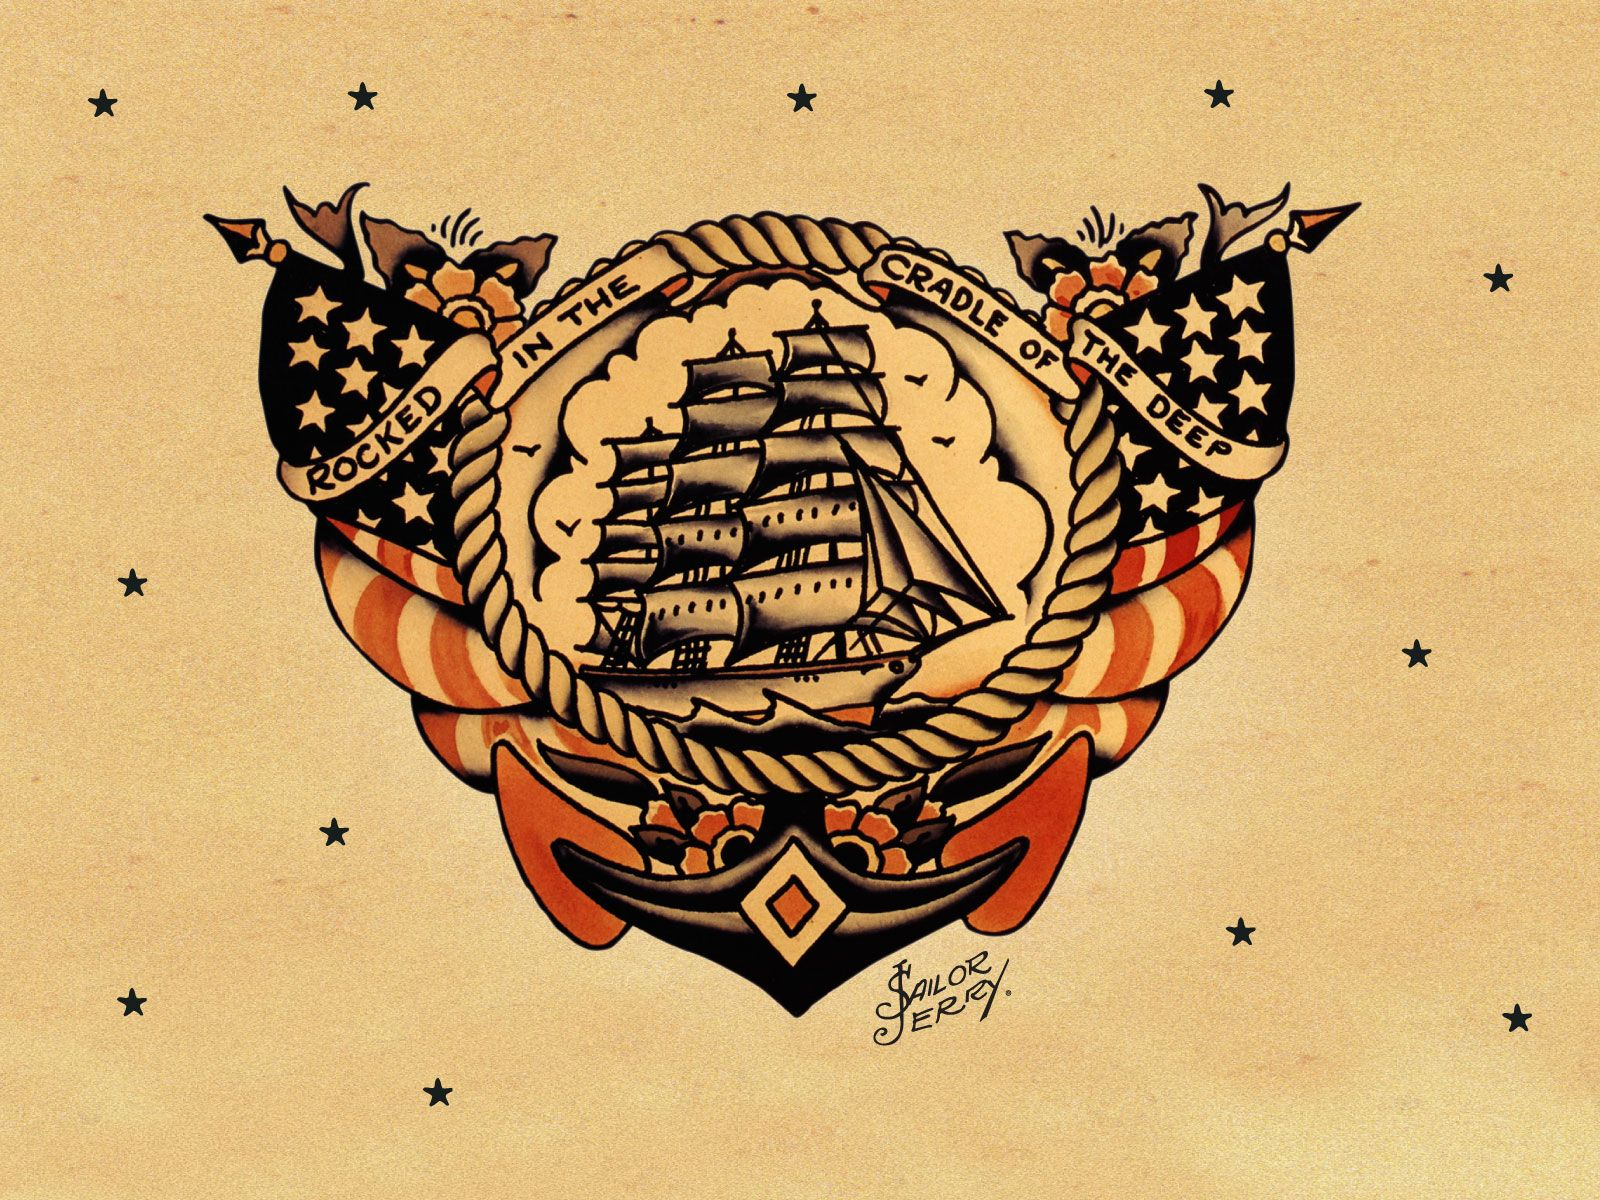 sailor jerry | Sailor Jerry | Going General: My Frequency of Desire ...